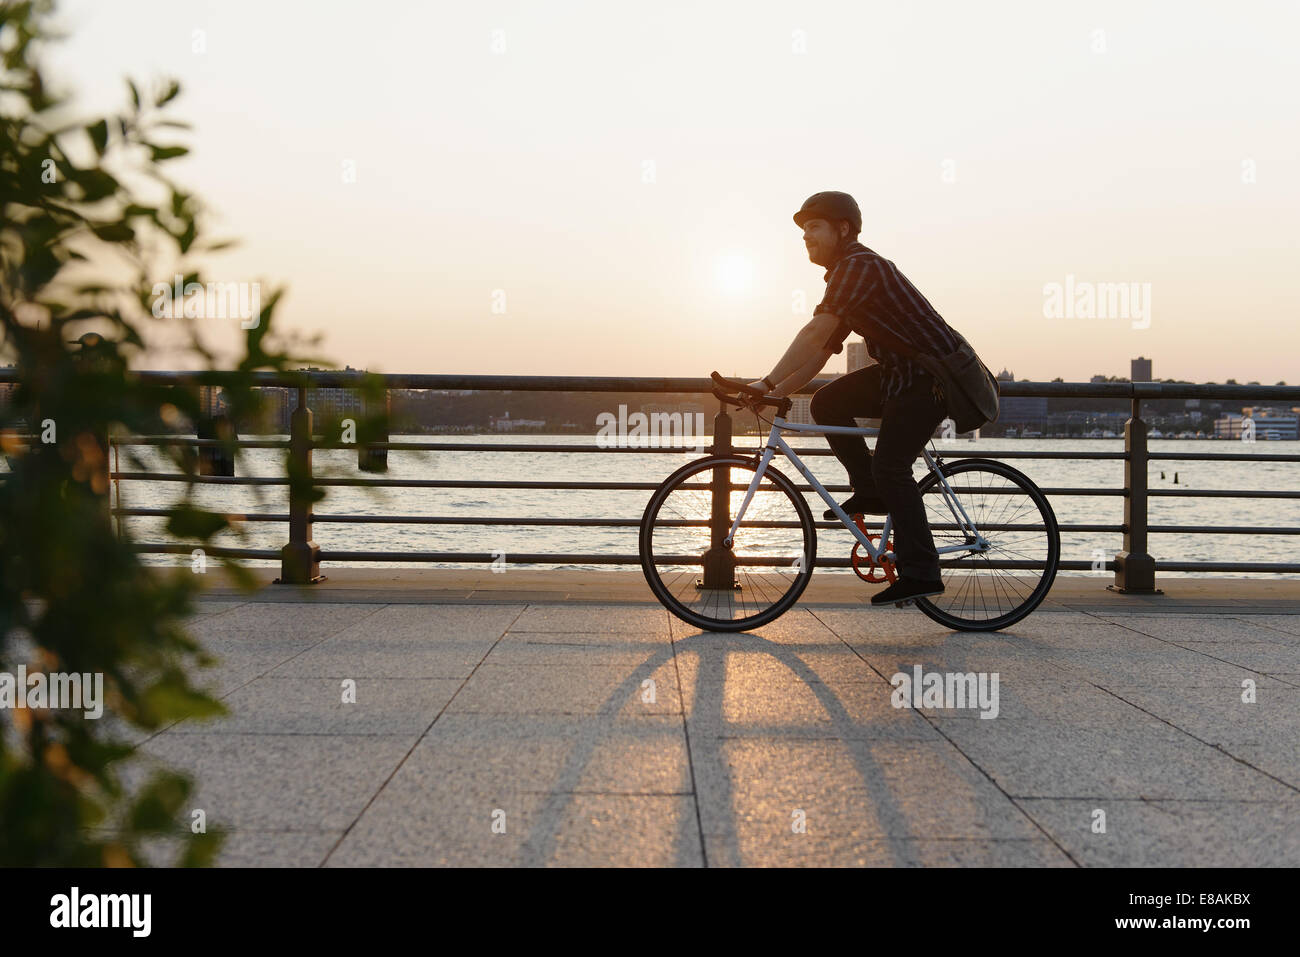 Male messenger cycling along city riverside - Stock Image